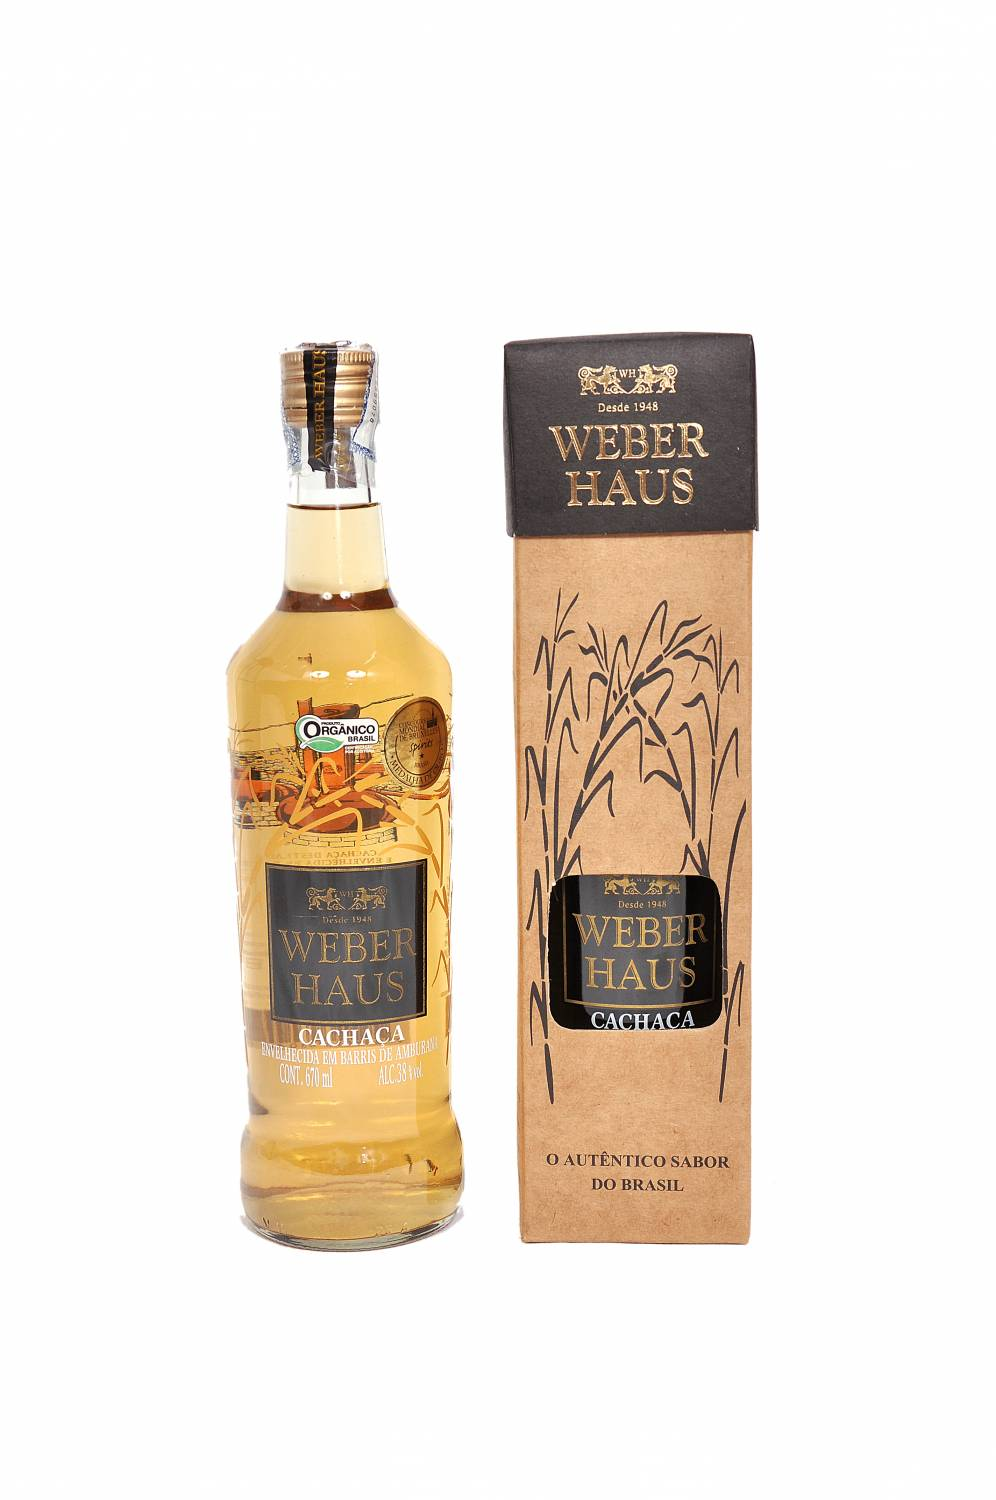 Cachaça Weber Haus: now available at The Cachaça Company